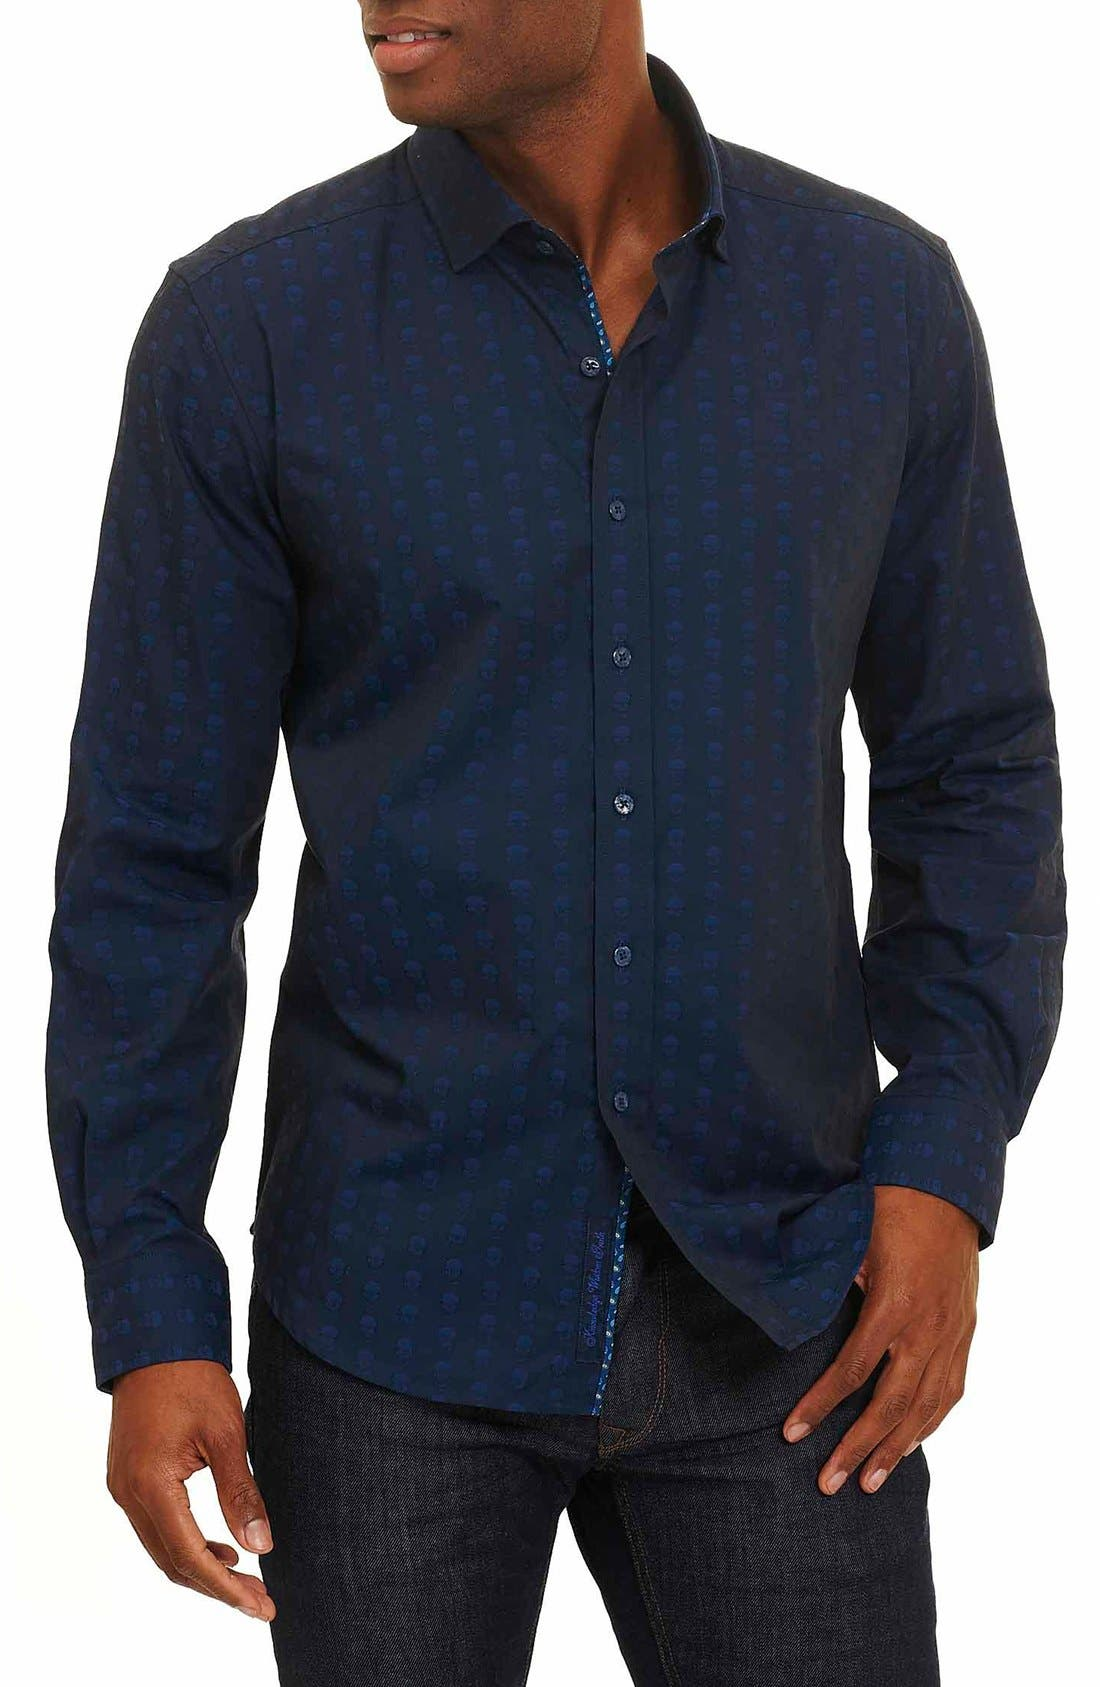 Main Image - Robert Graham Deven Tailored Fit Sport Shirt